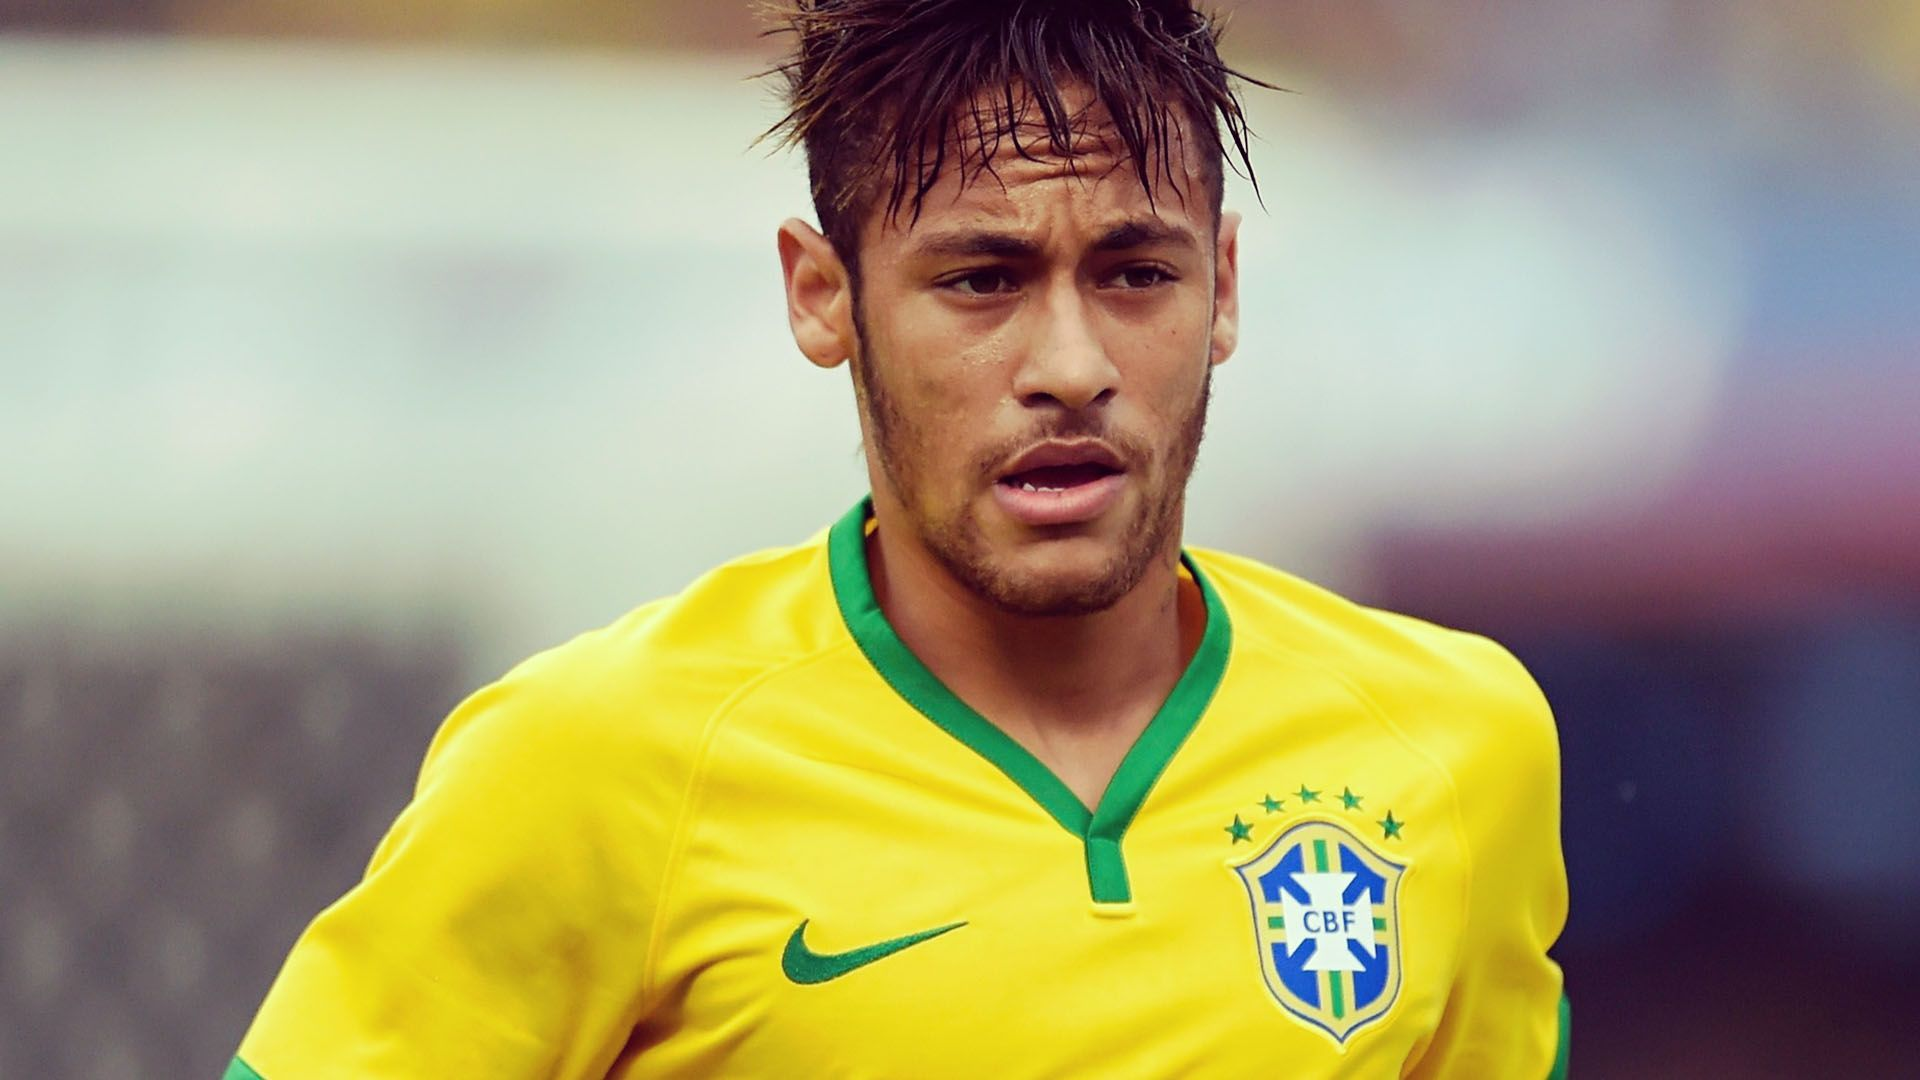 Hd wallpaper neymar - Messi And Neymar Wallpapers 1920 1080 Neymar Wallpaper 53 Wallpapers Adorable Wallpapers